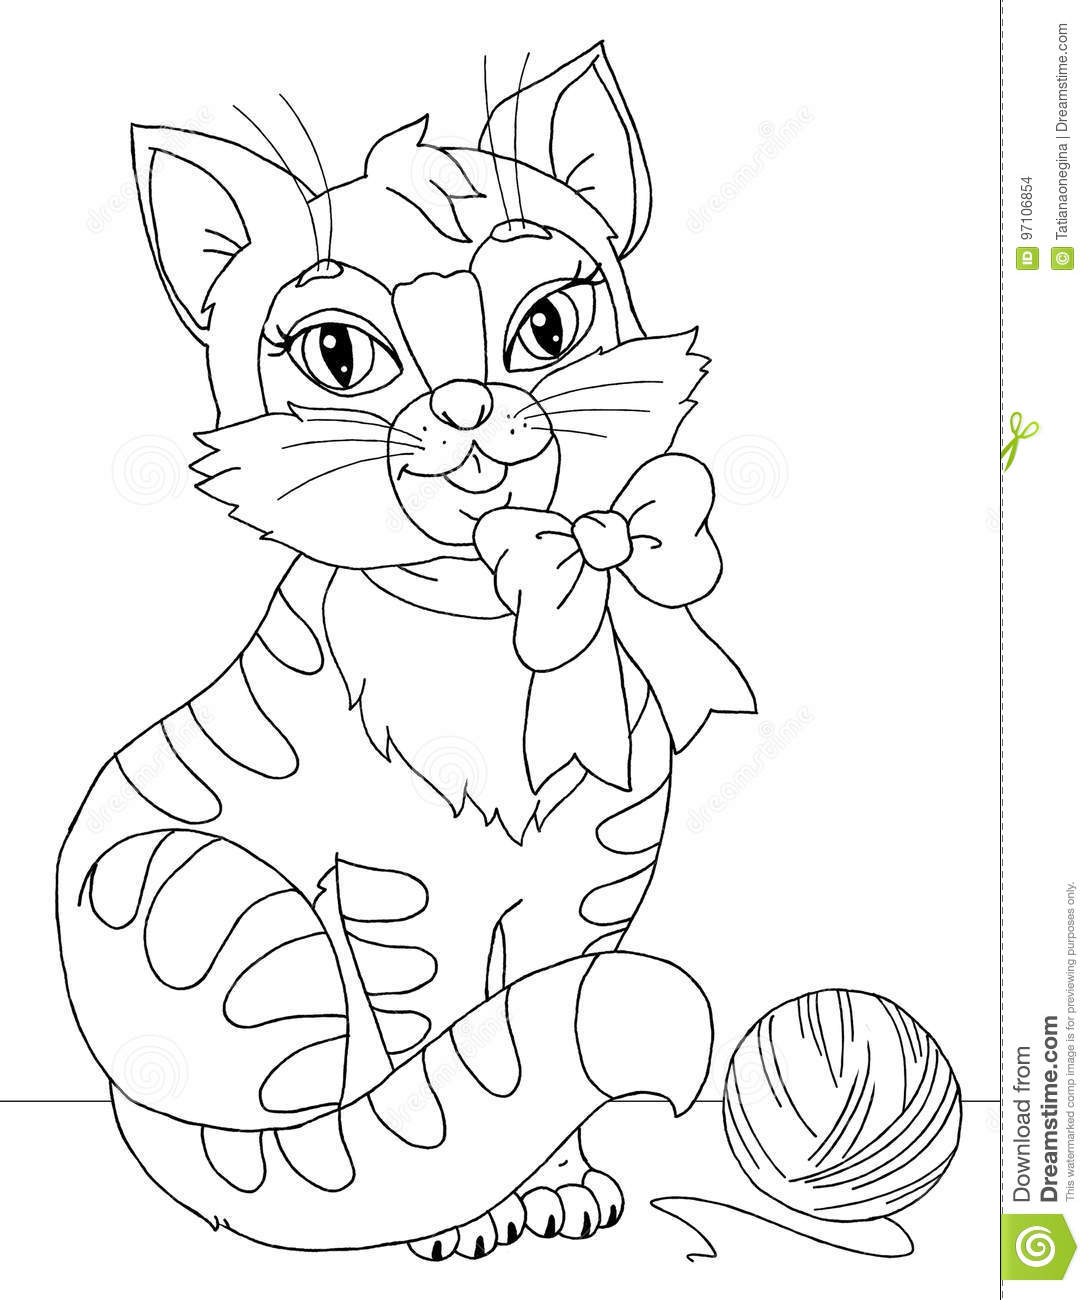 Kitten Coloring Page Stock Illustration Illustration Of Paws 97106854